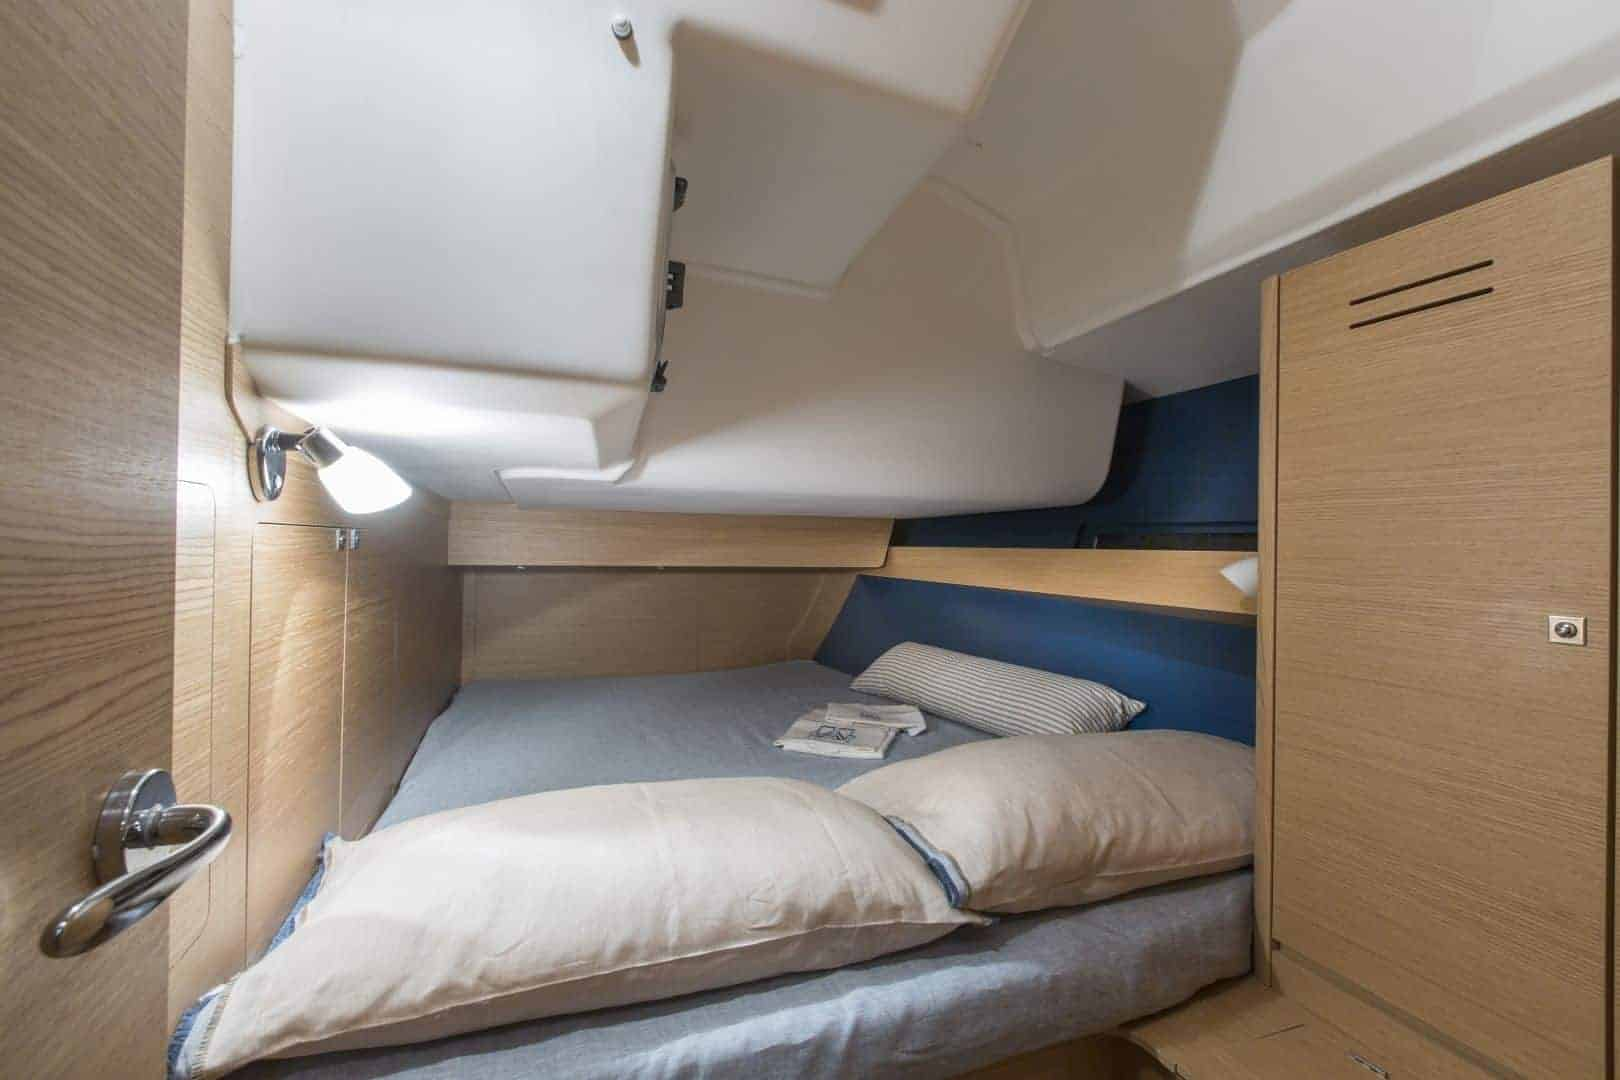 Dufour GL 460 cabin with nice bed